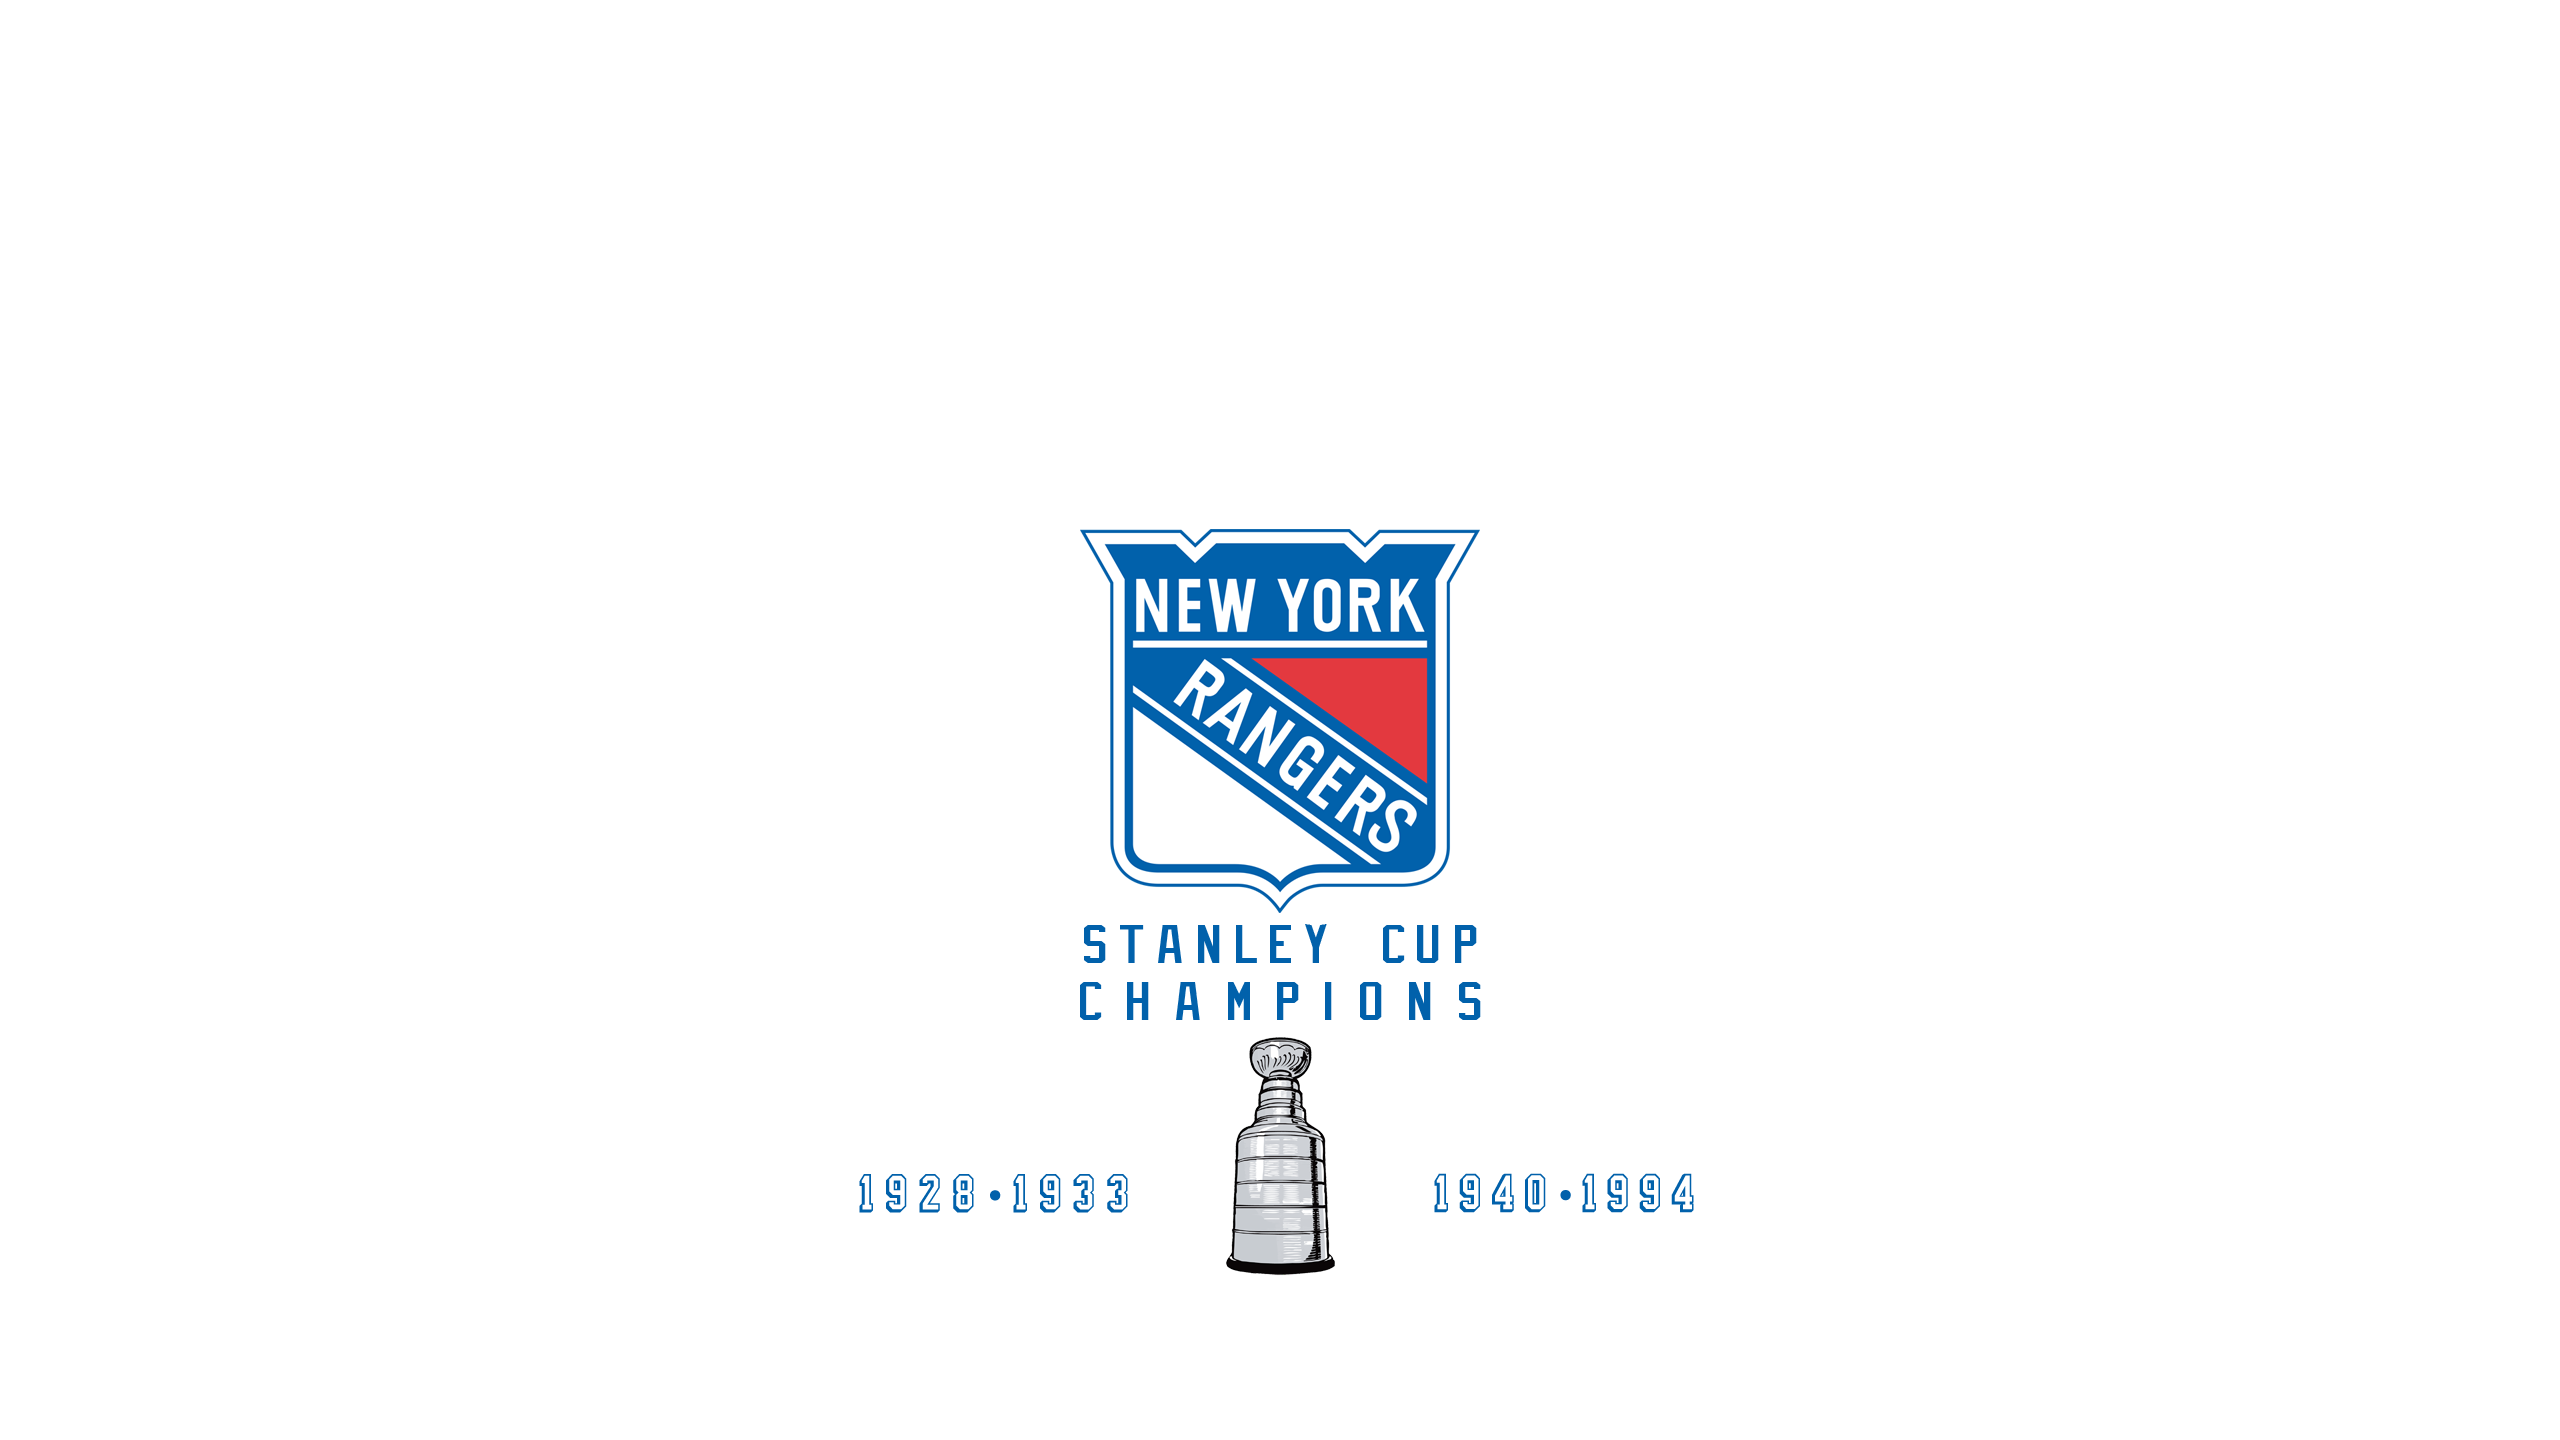 New York Rangers - Stanley Cup